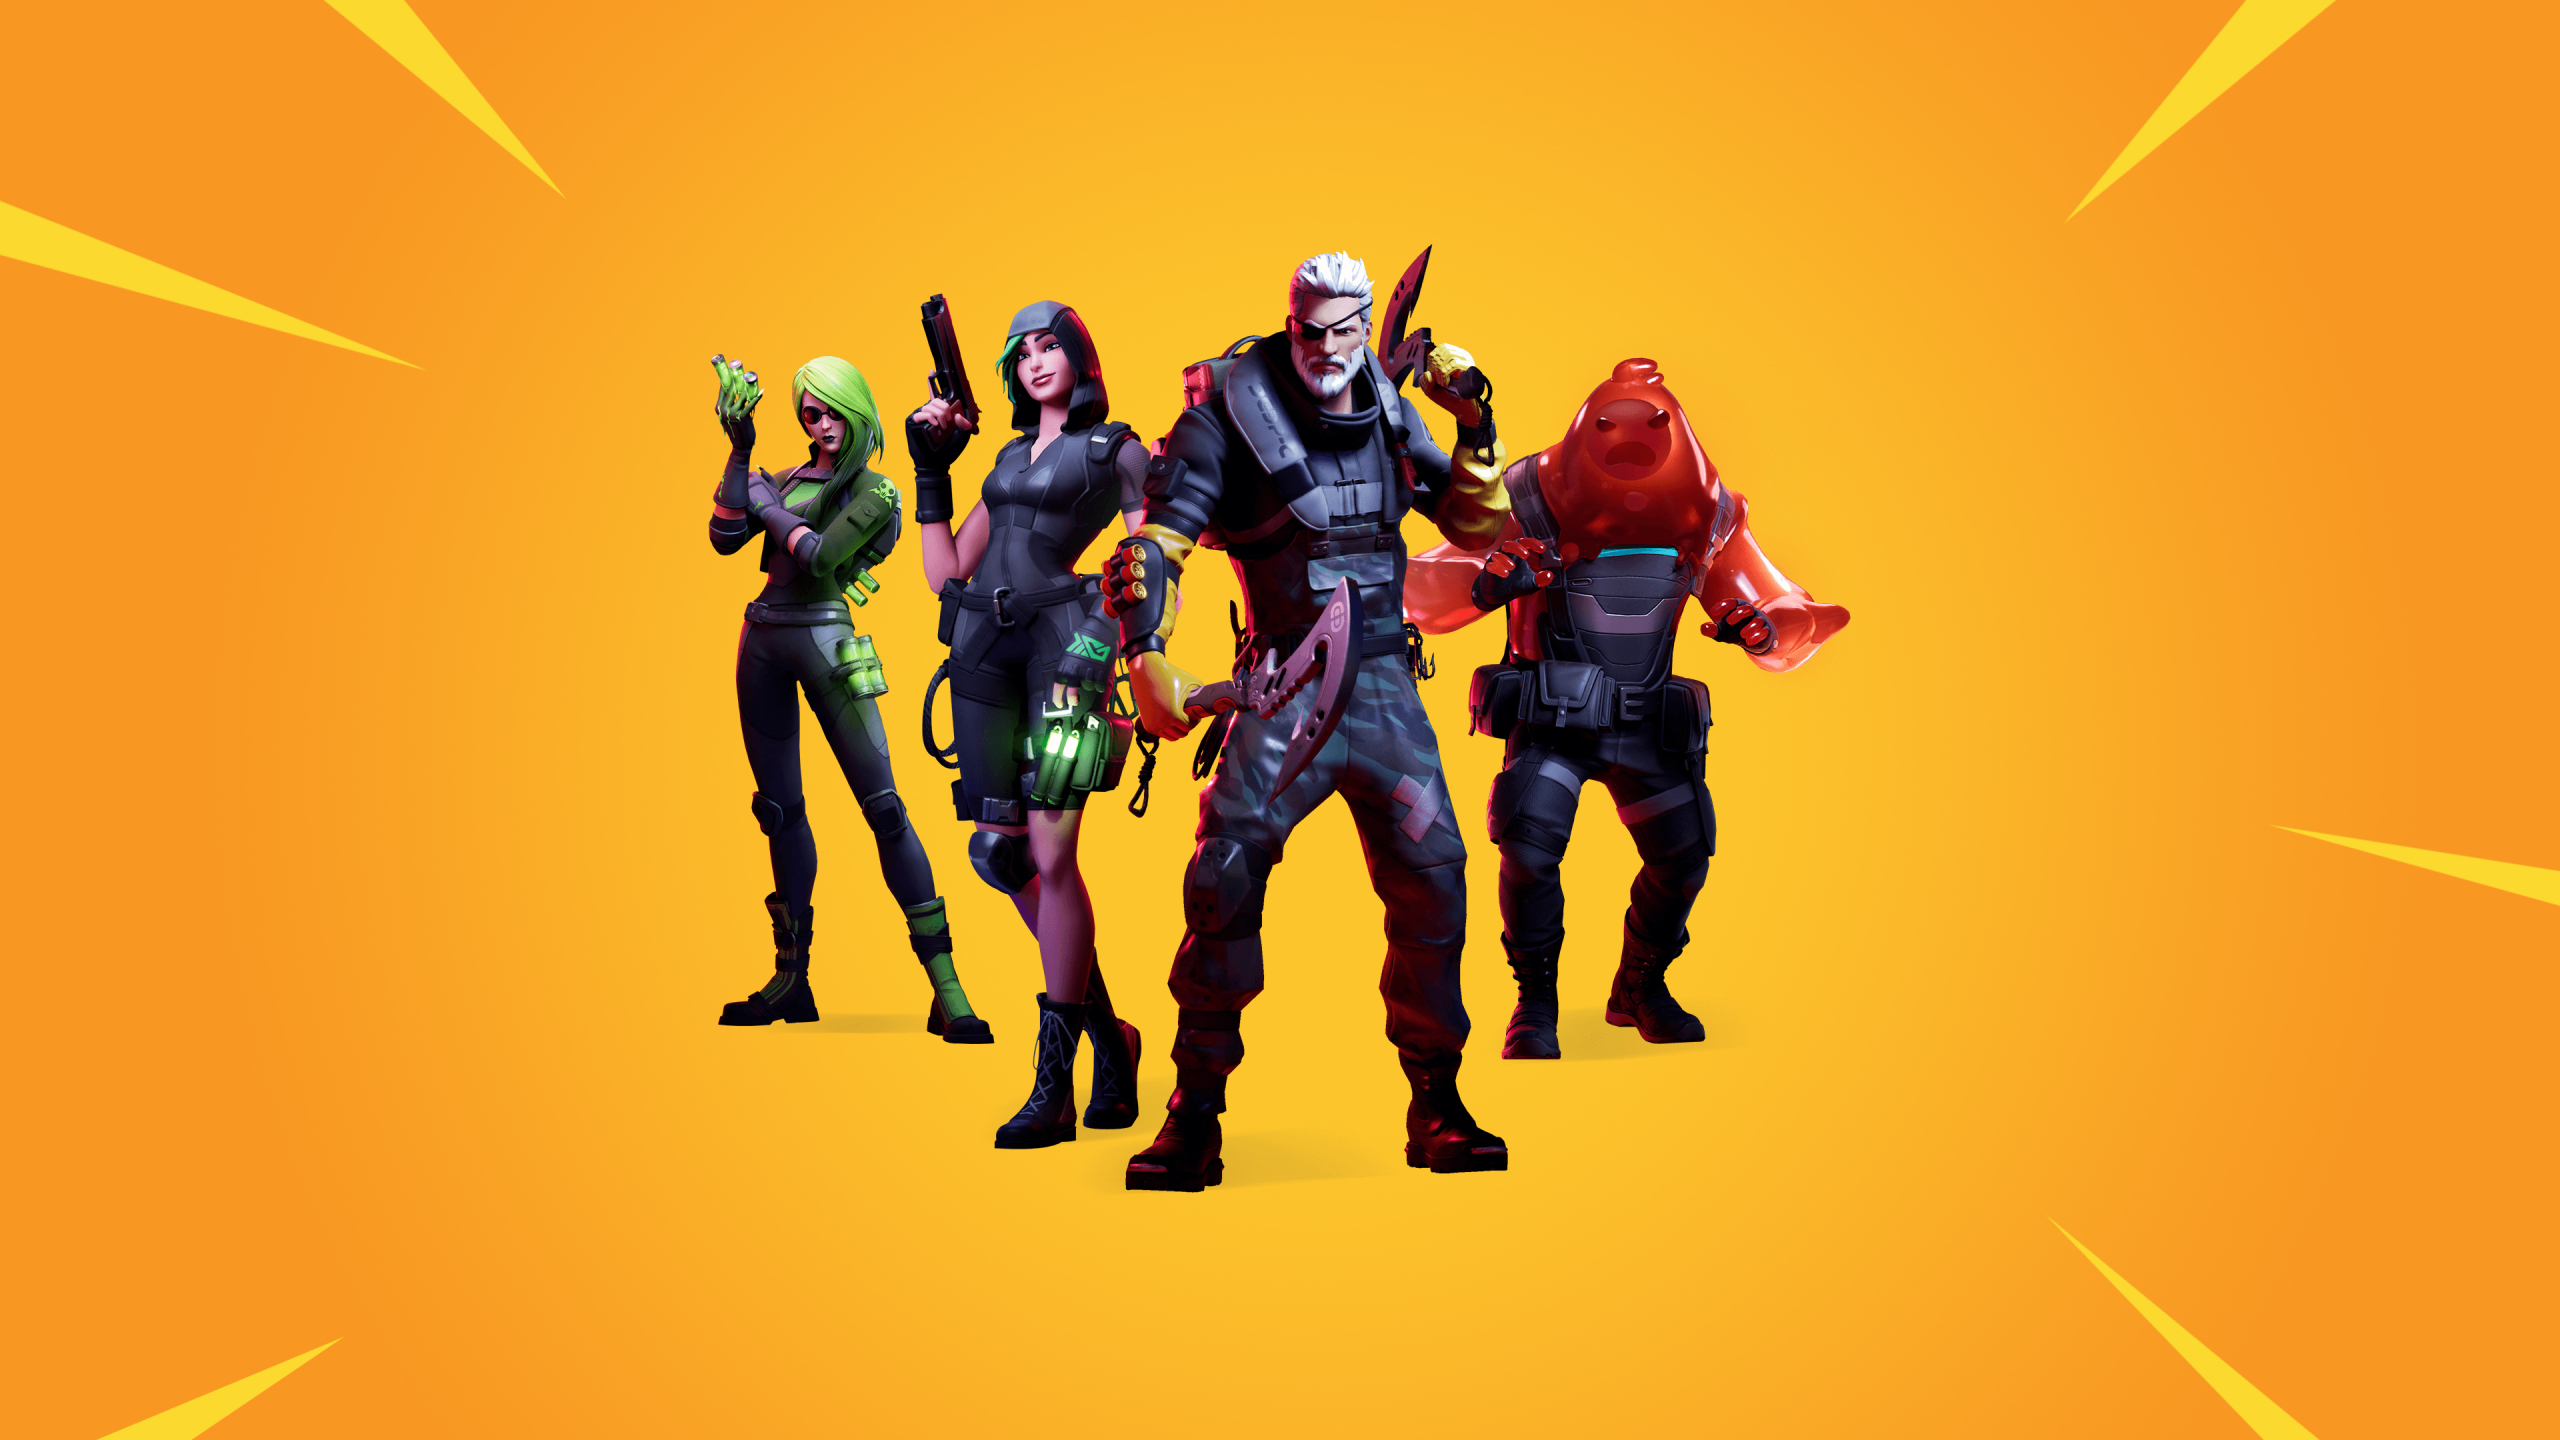 2560x1440 Fortnite 2 1440p Resolution Wallpaper Hd Games 4k